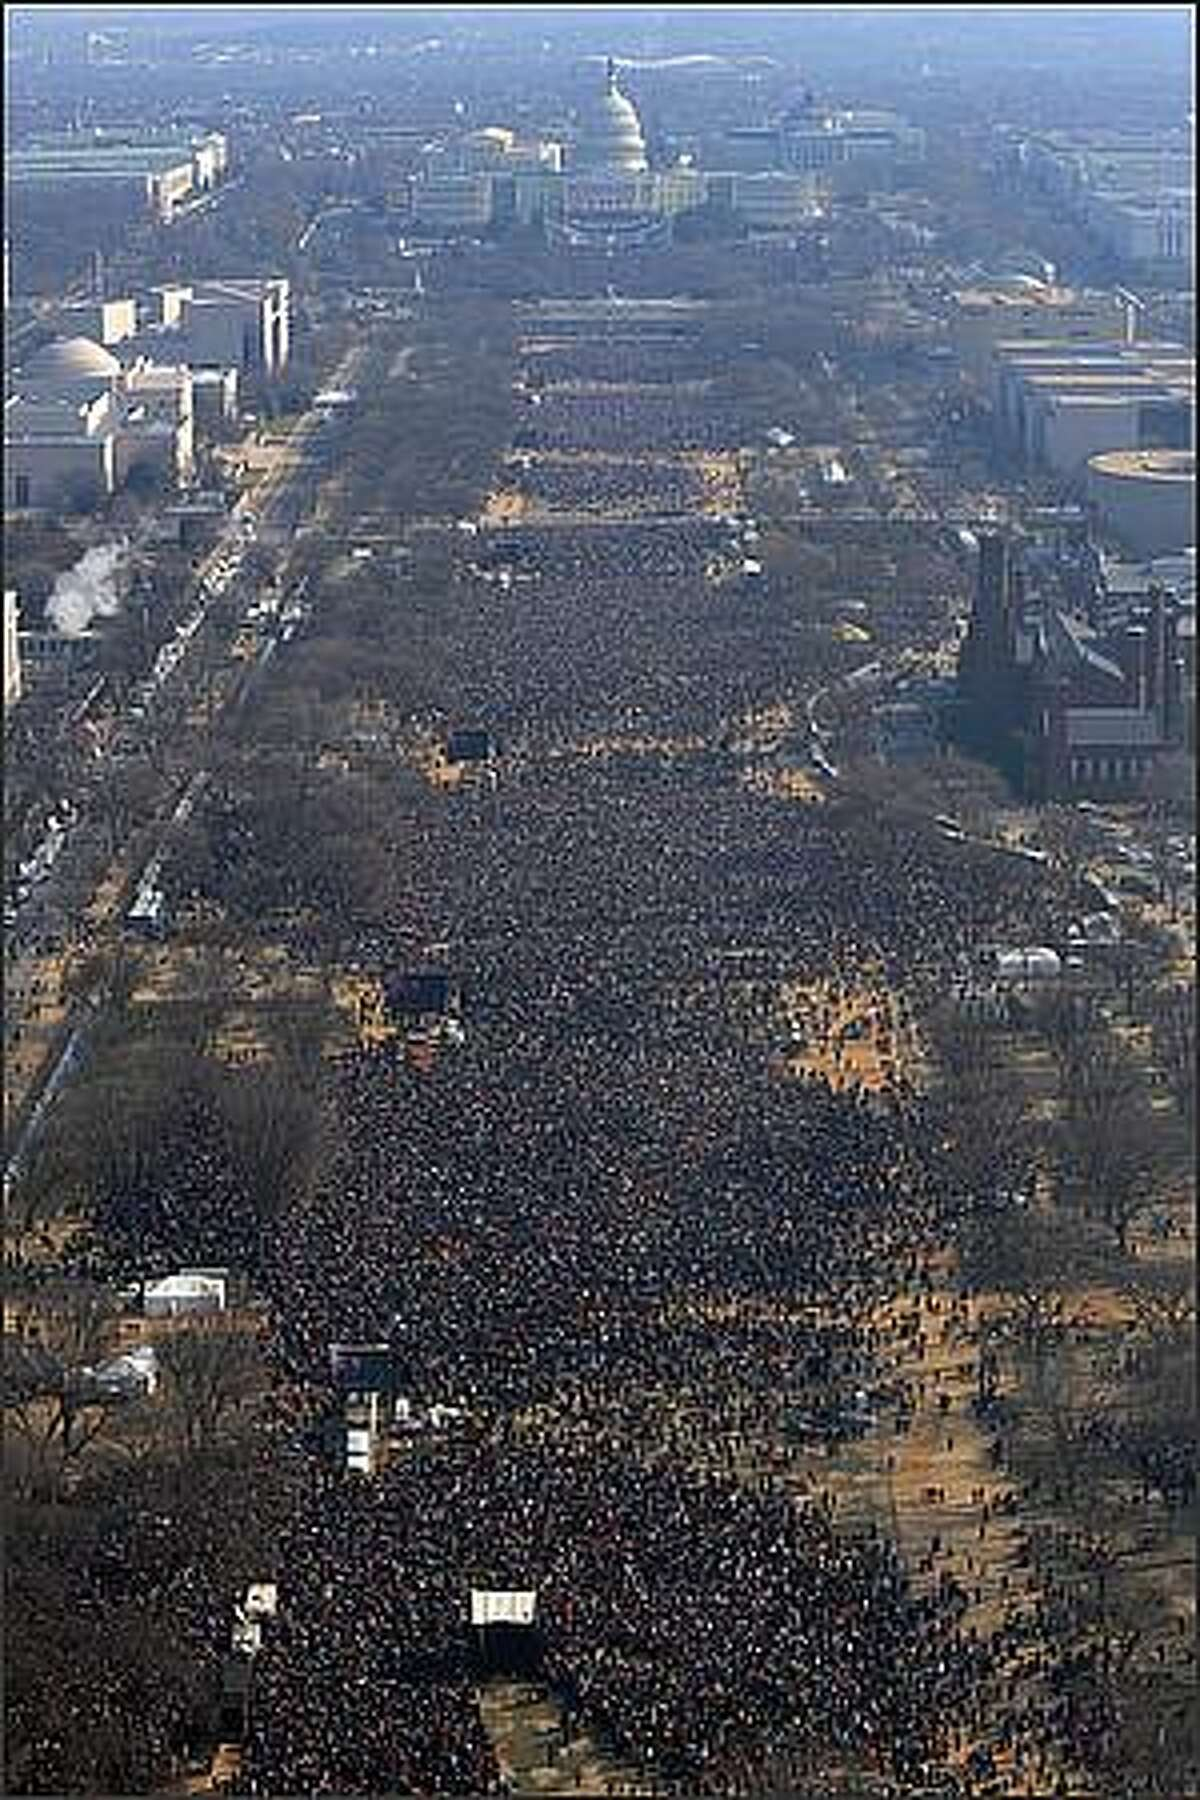 People gather on the National Mall in Washington, DC, to watch the inauguration of US President-elect Barack Obama as 44th US president. JEWEL SAMAD/AFP/Getty Images